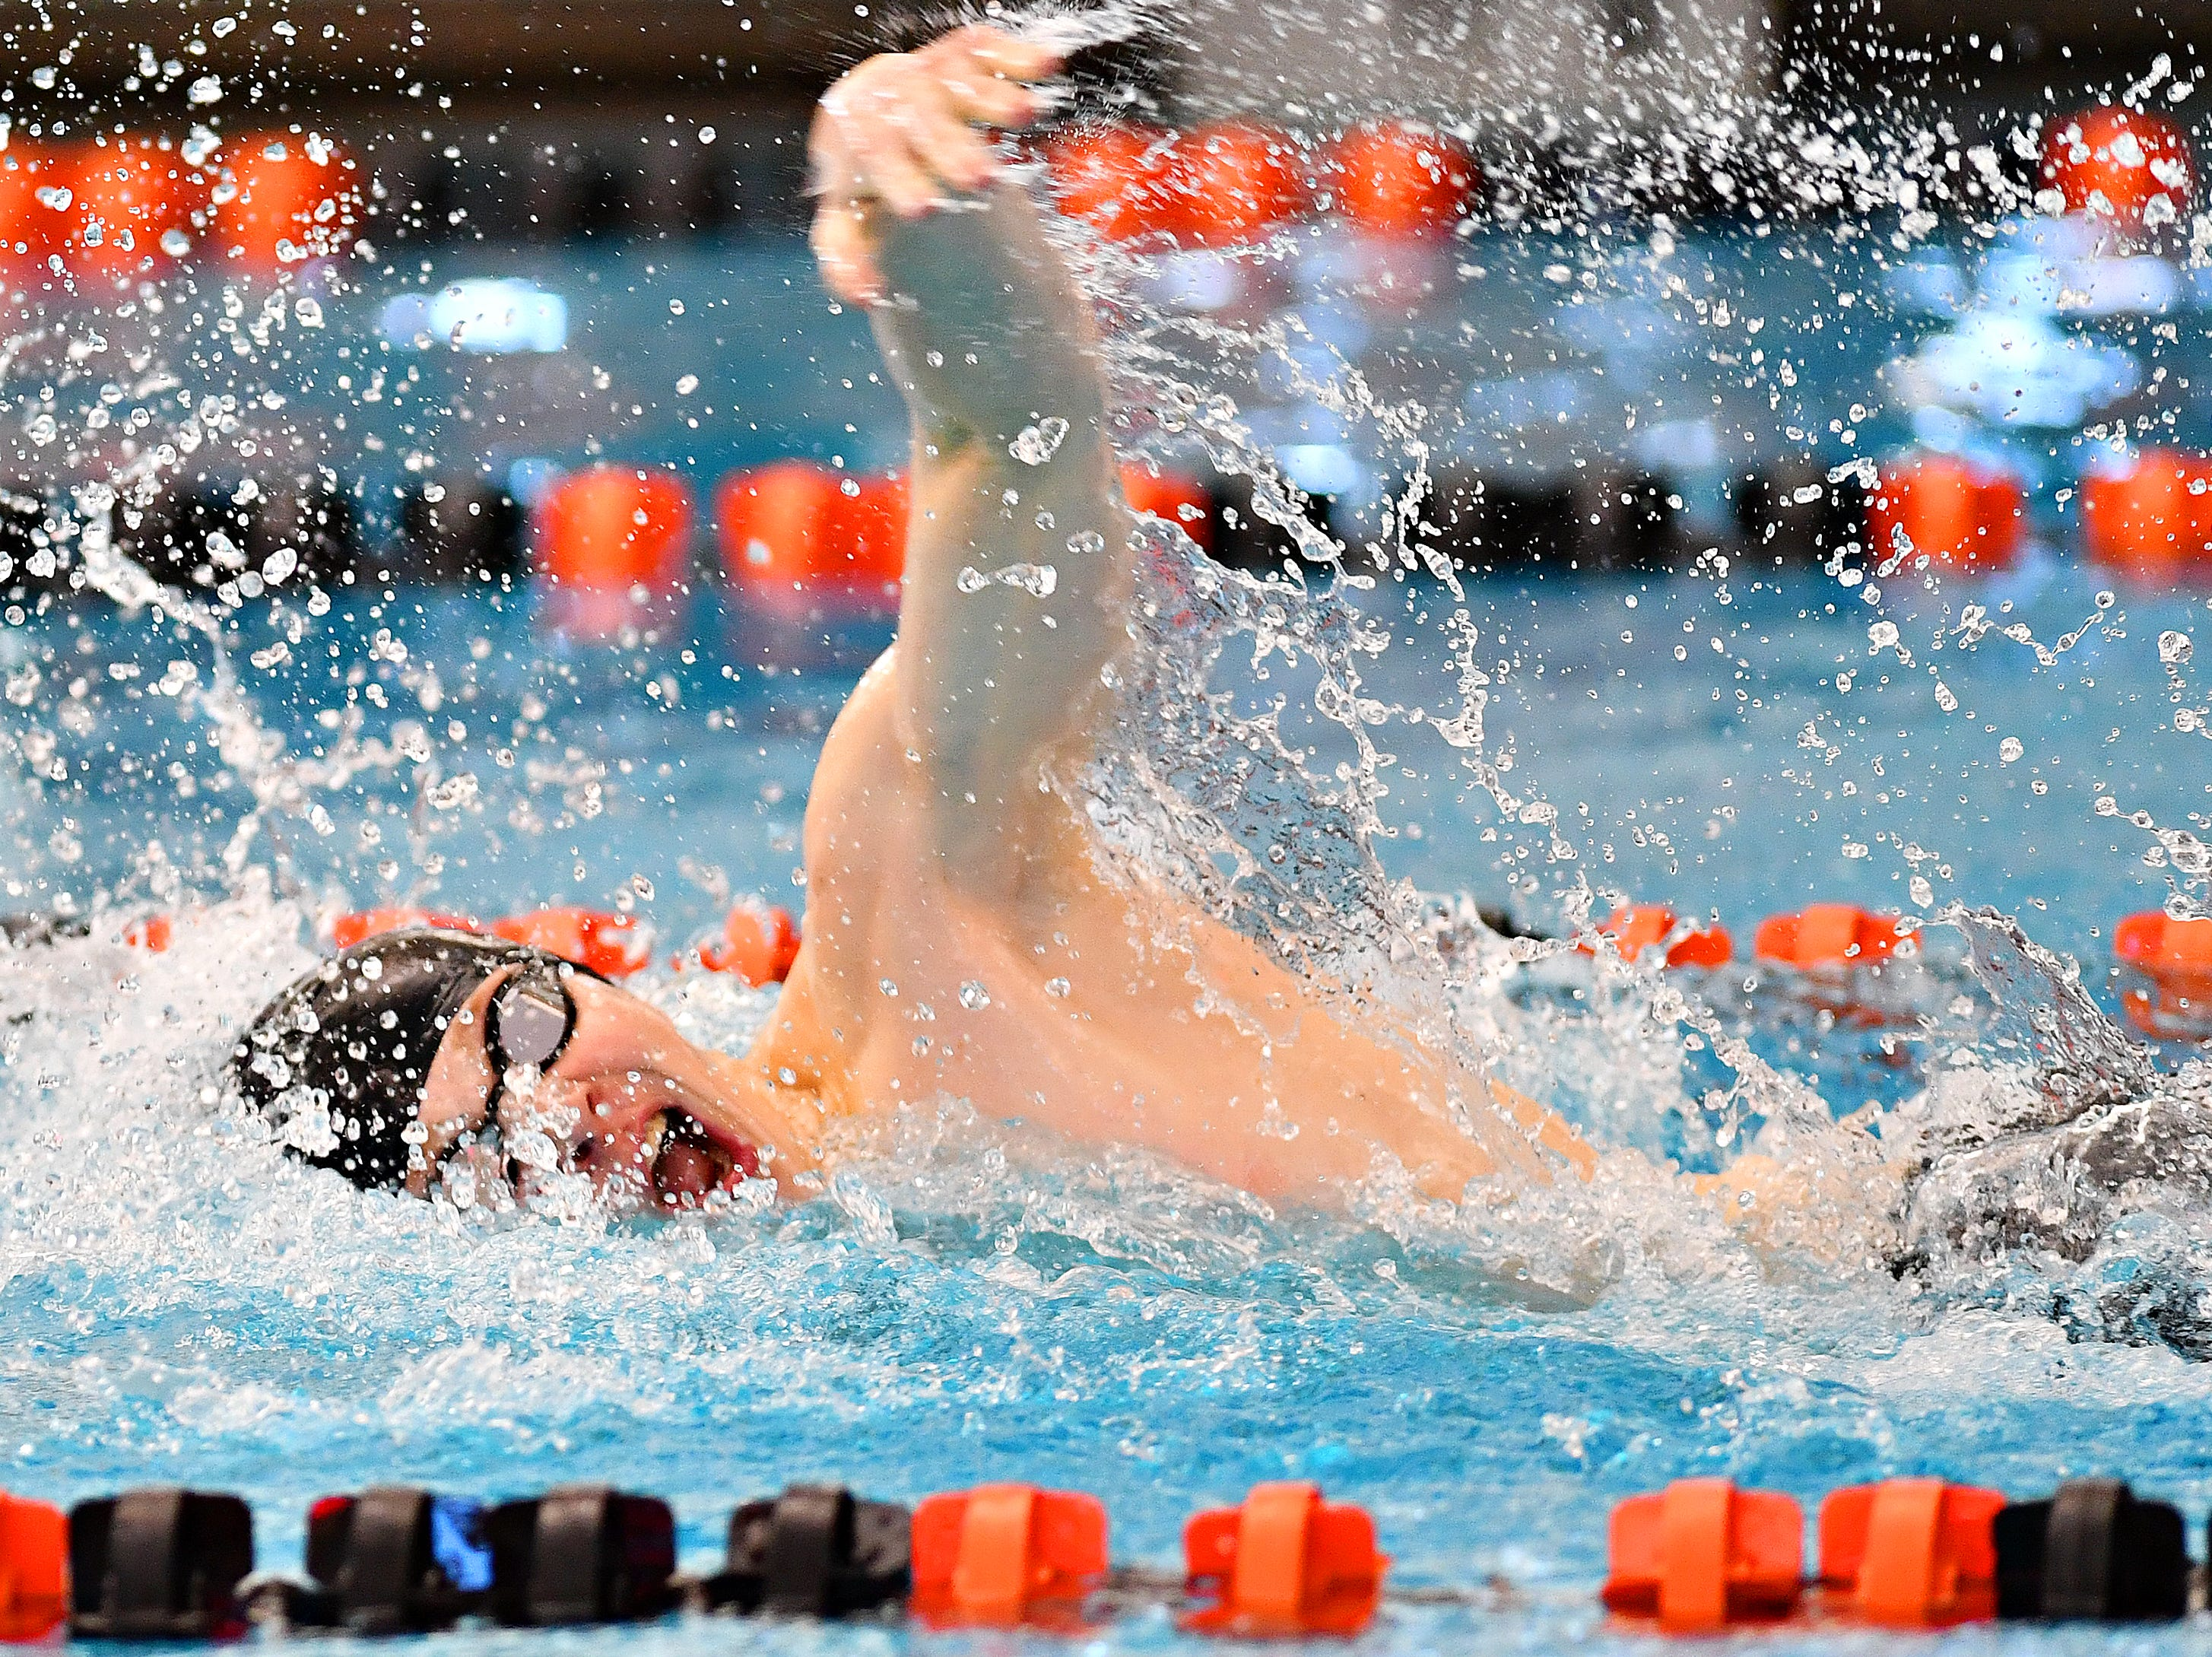 Dallastown's Thomas Smolinski competes in the 100 Yard Freestyle event during the York-Adams League Swimming Championship at Central York High School in Springettsbury Township, Saturday, Feb. 9, 2019. Dawn J. Sagert photo